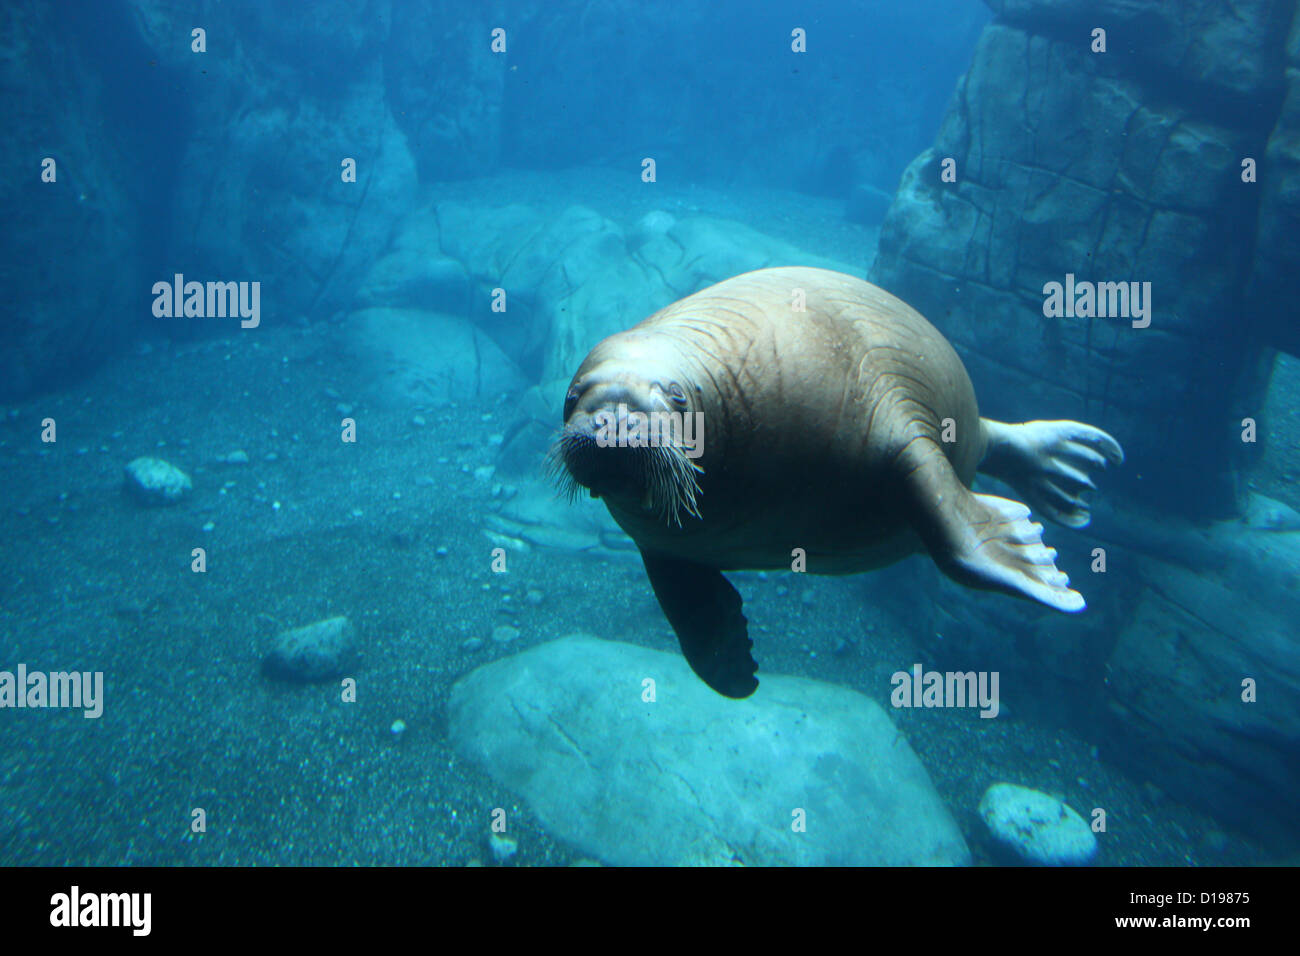 Hunt Walrus Stock Photos & Hunt Walrus Stock Images - Alamy